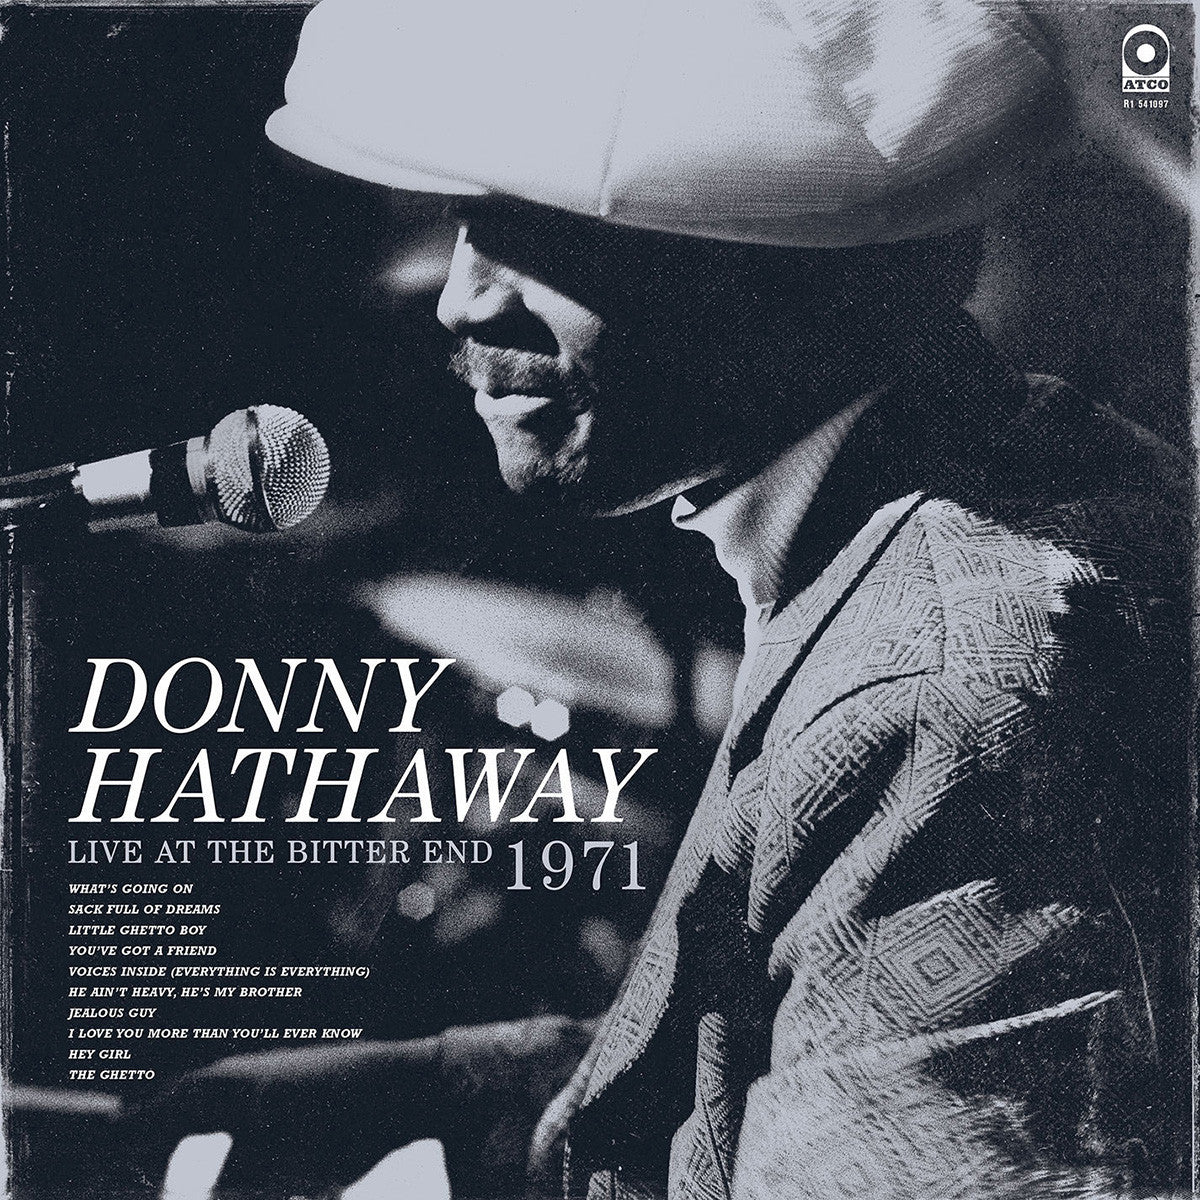 Donny Hathaway: Live At the Bitter End 1971 Vinyl 2LP (Record Store Day 2014)